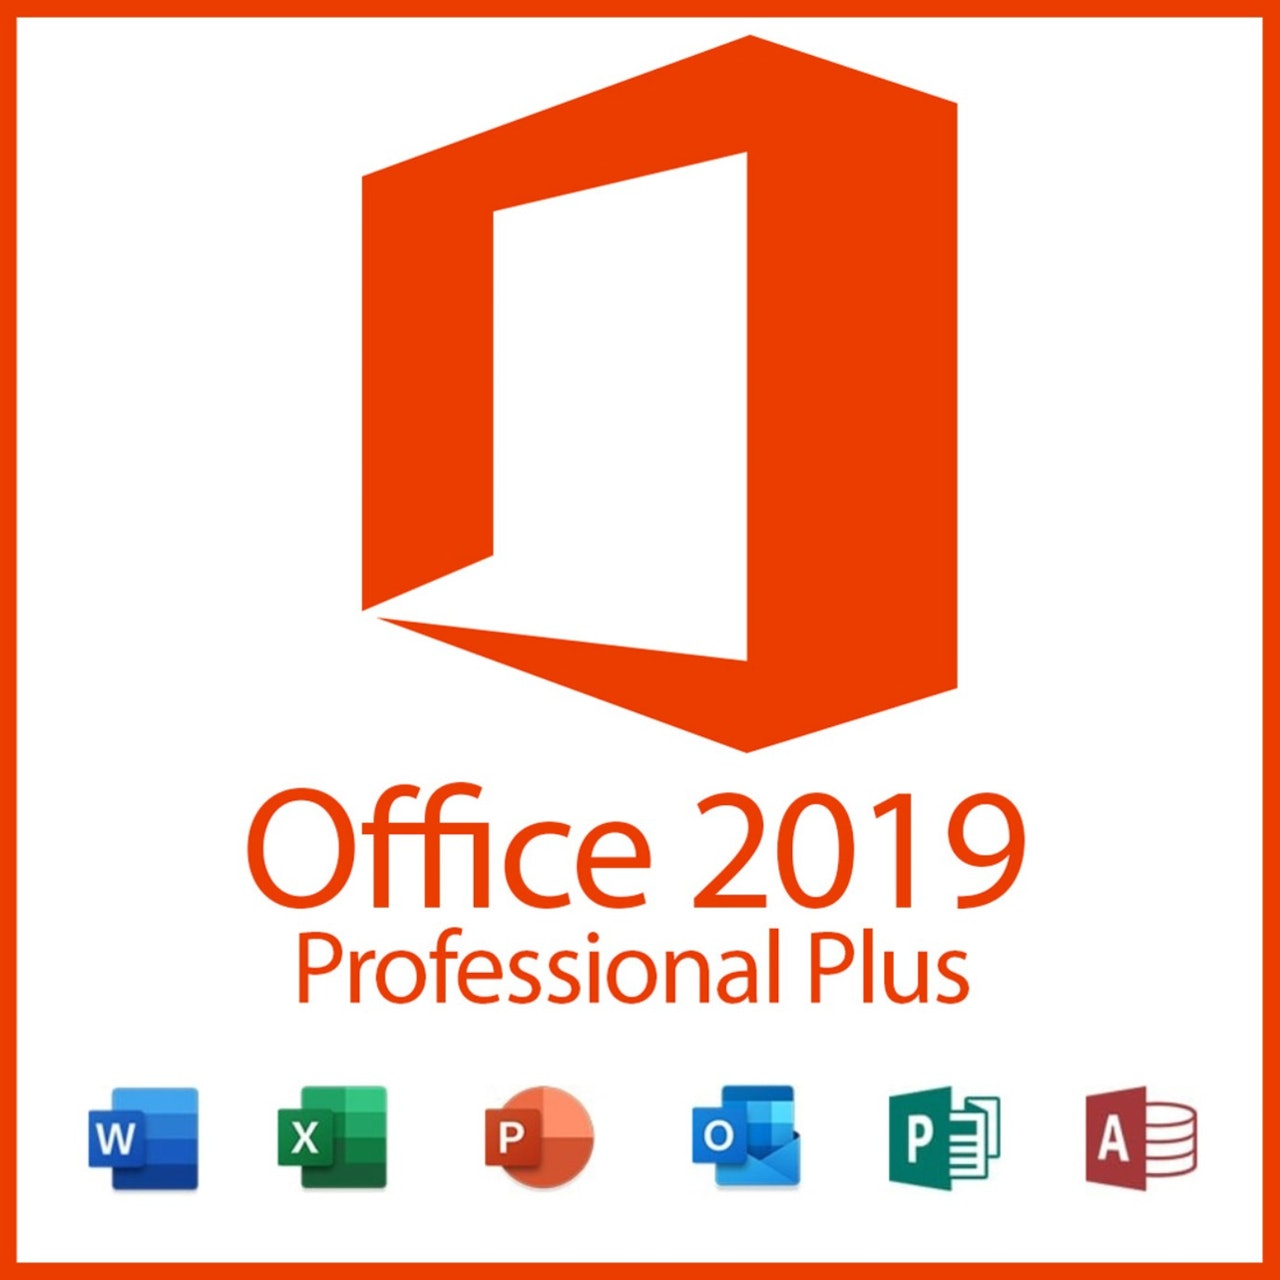 Ms Office Professional Plus 2019 - Genuine 32/64 bit - Key Activation - all languages All Countries